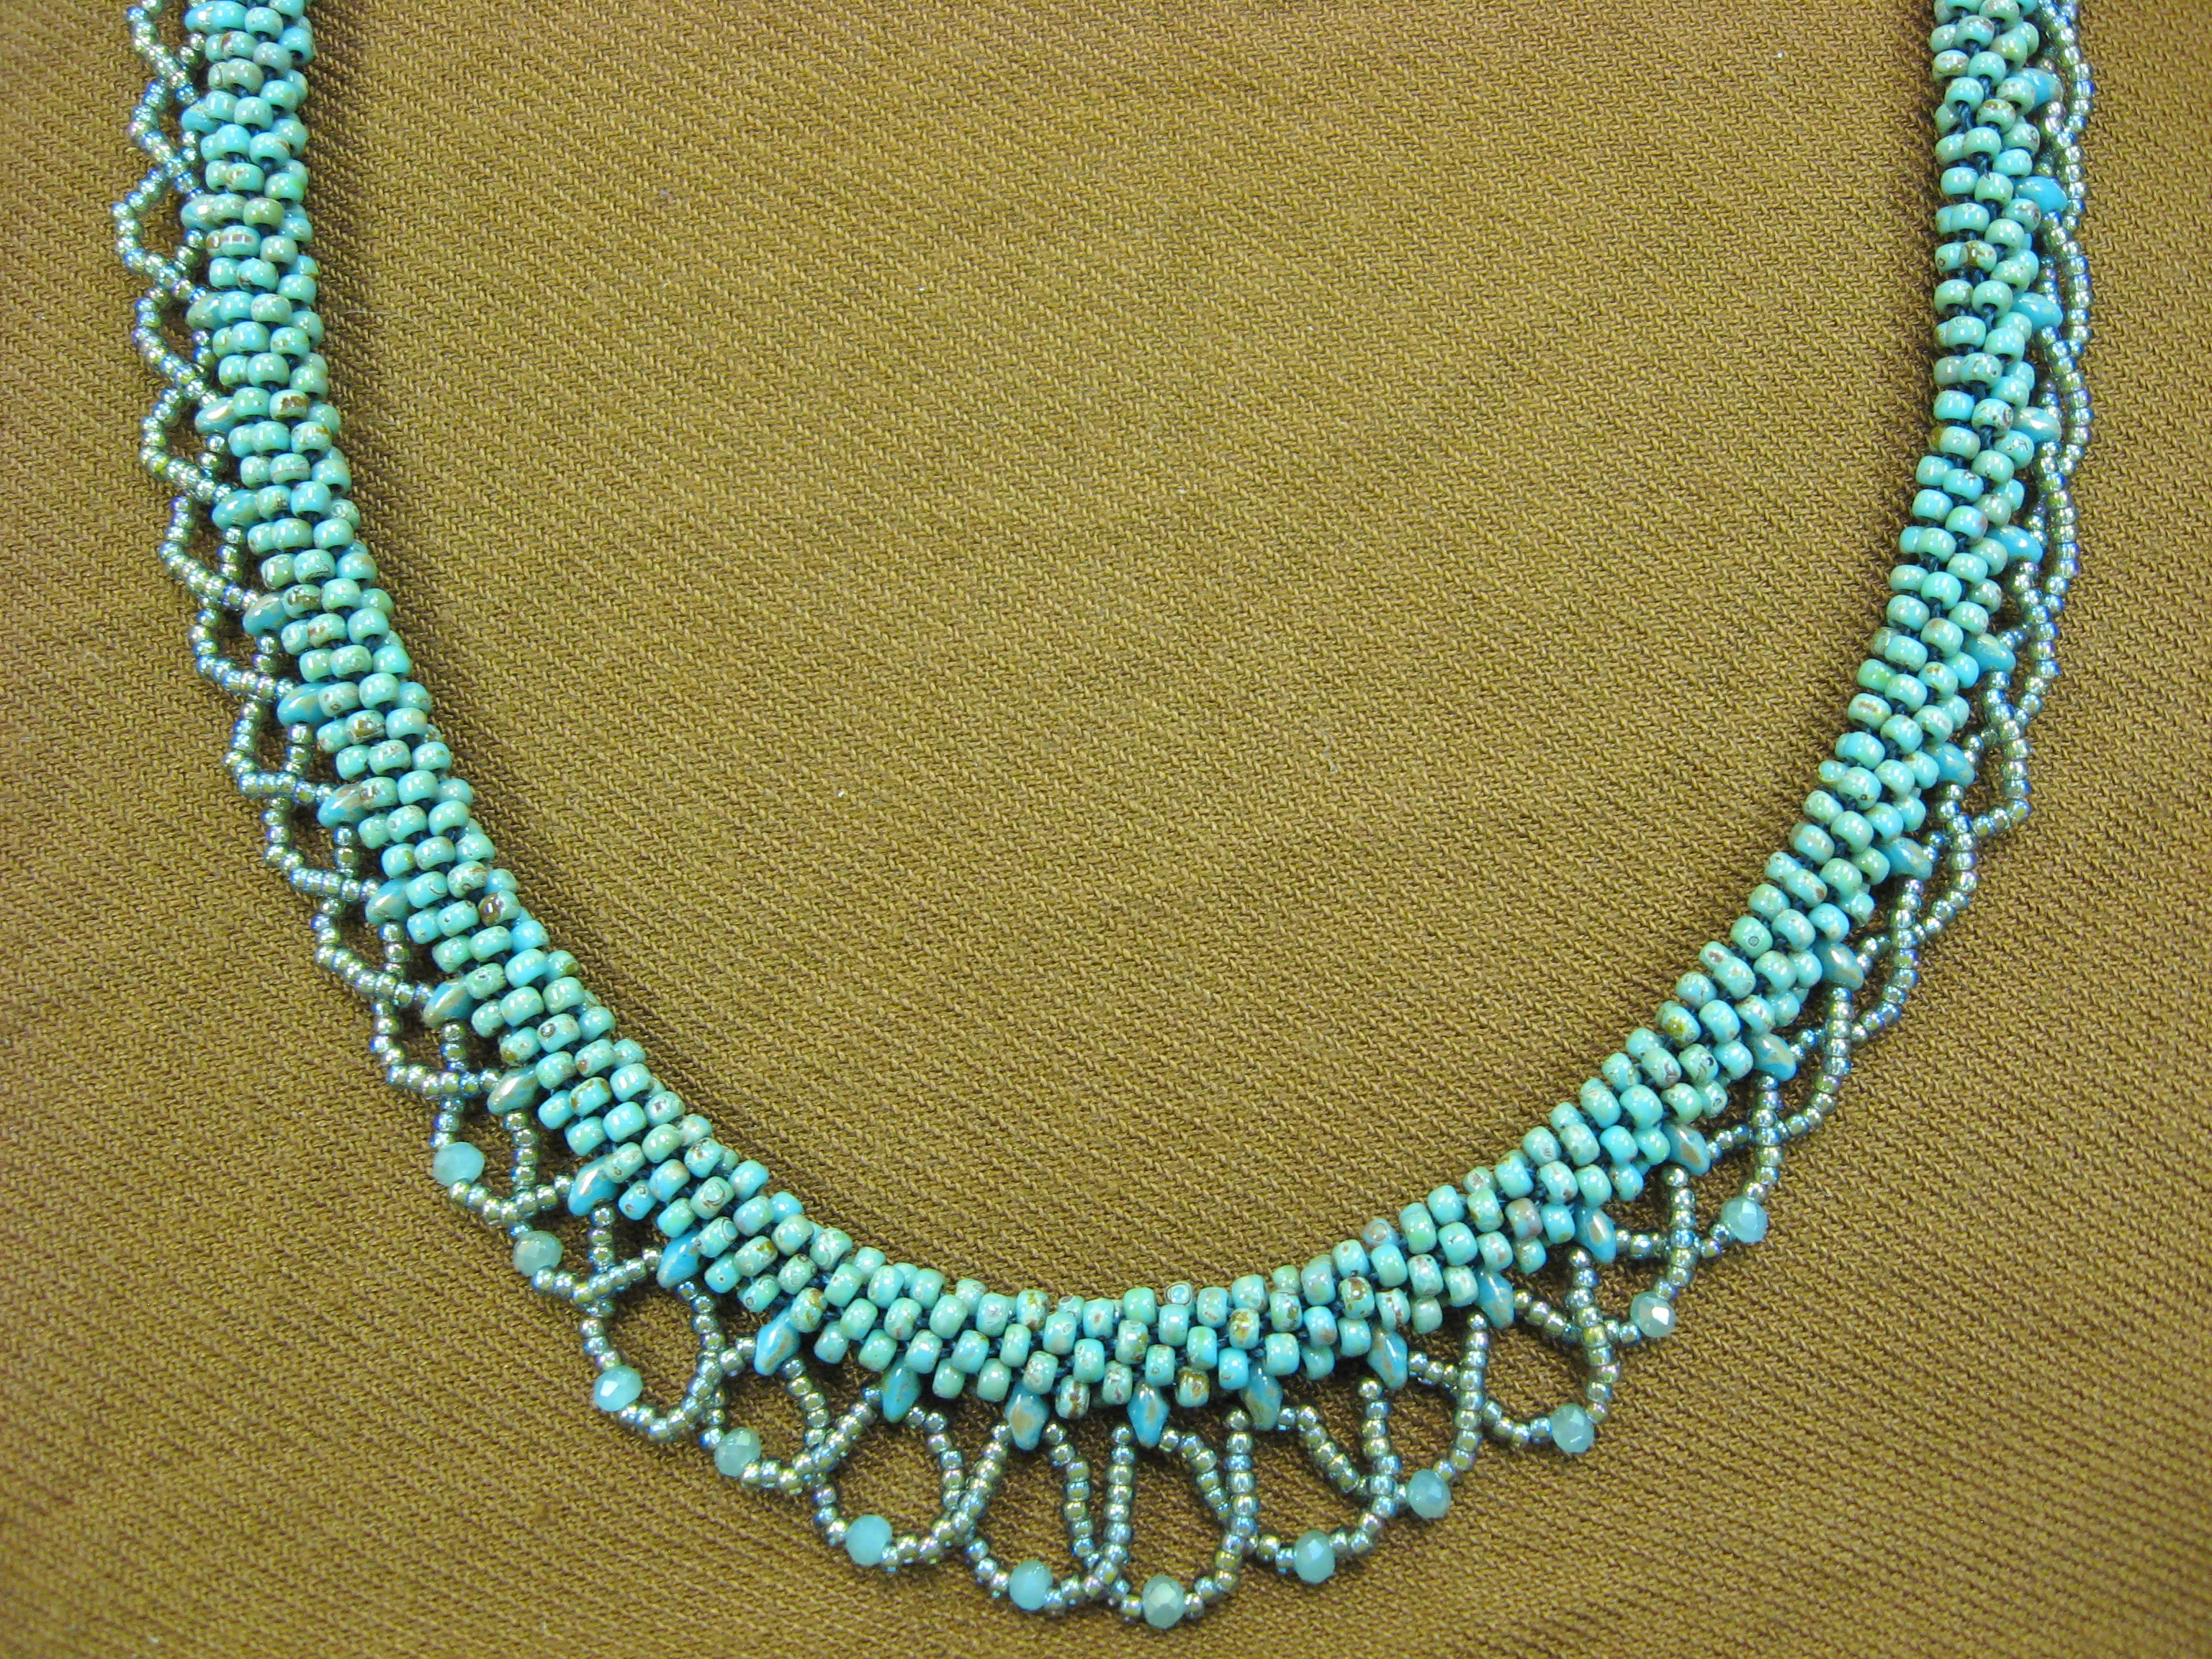 Kumihimo Krazy Necklace